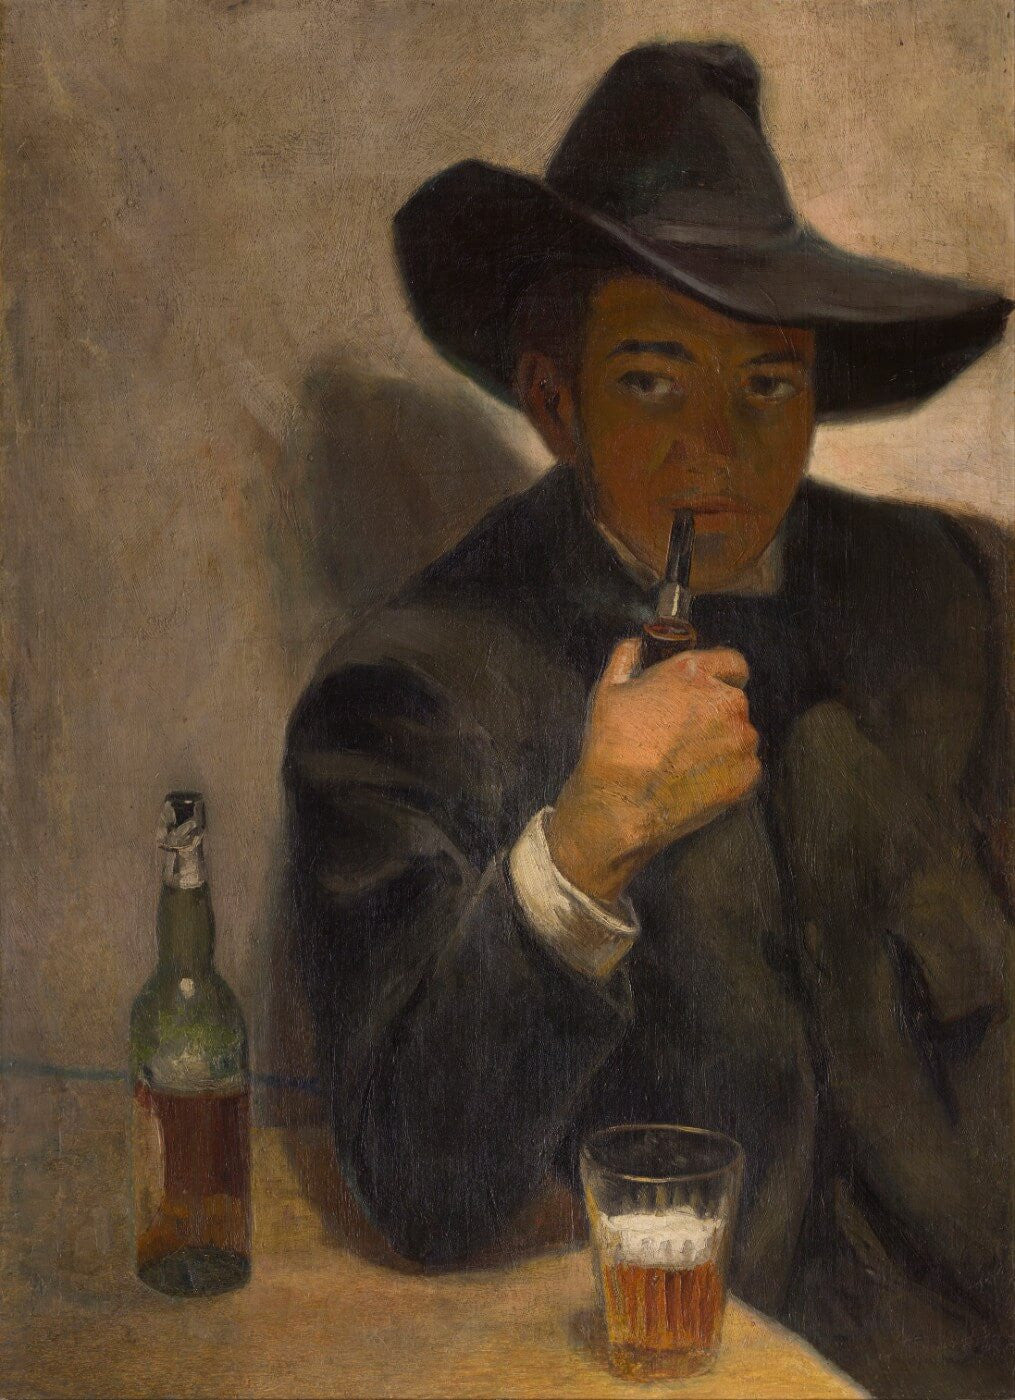 Self-Portrait With Broad-Brimmed Hat by Diego Rivera  7a1e3cadb